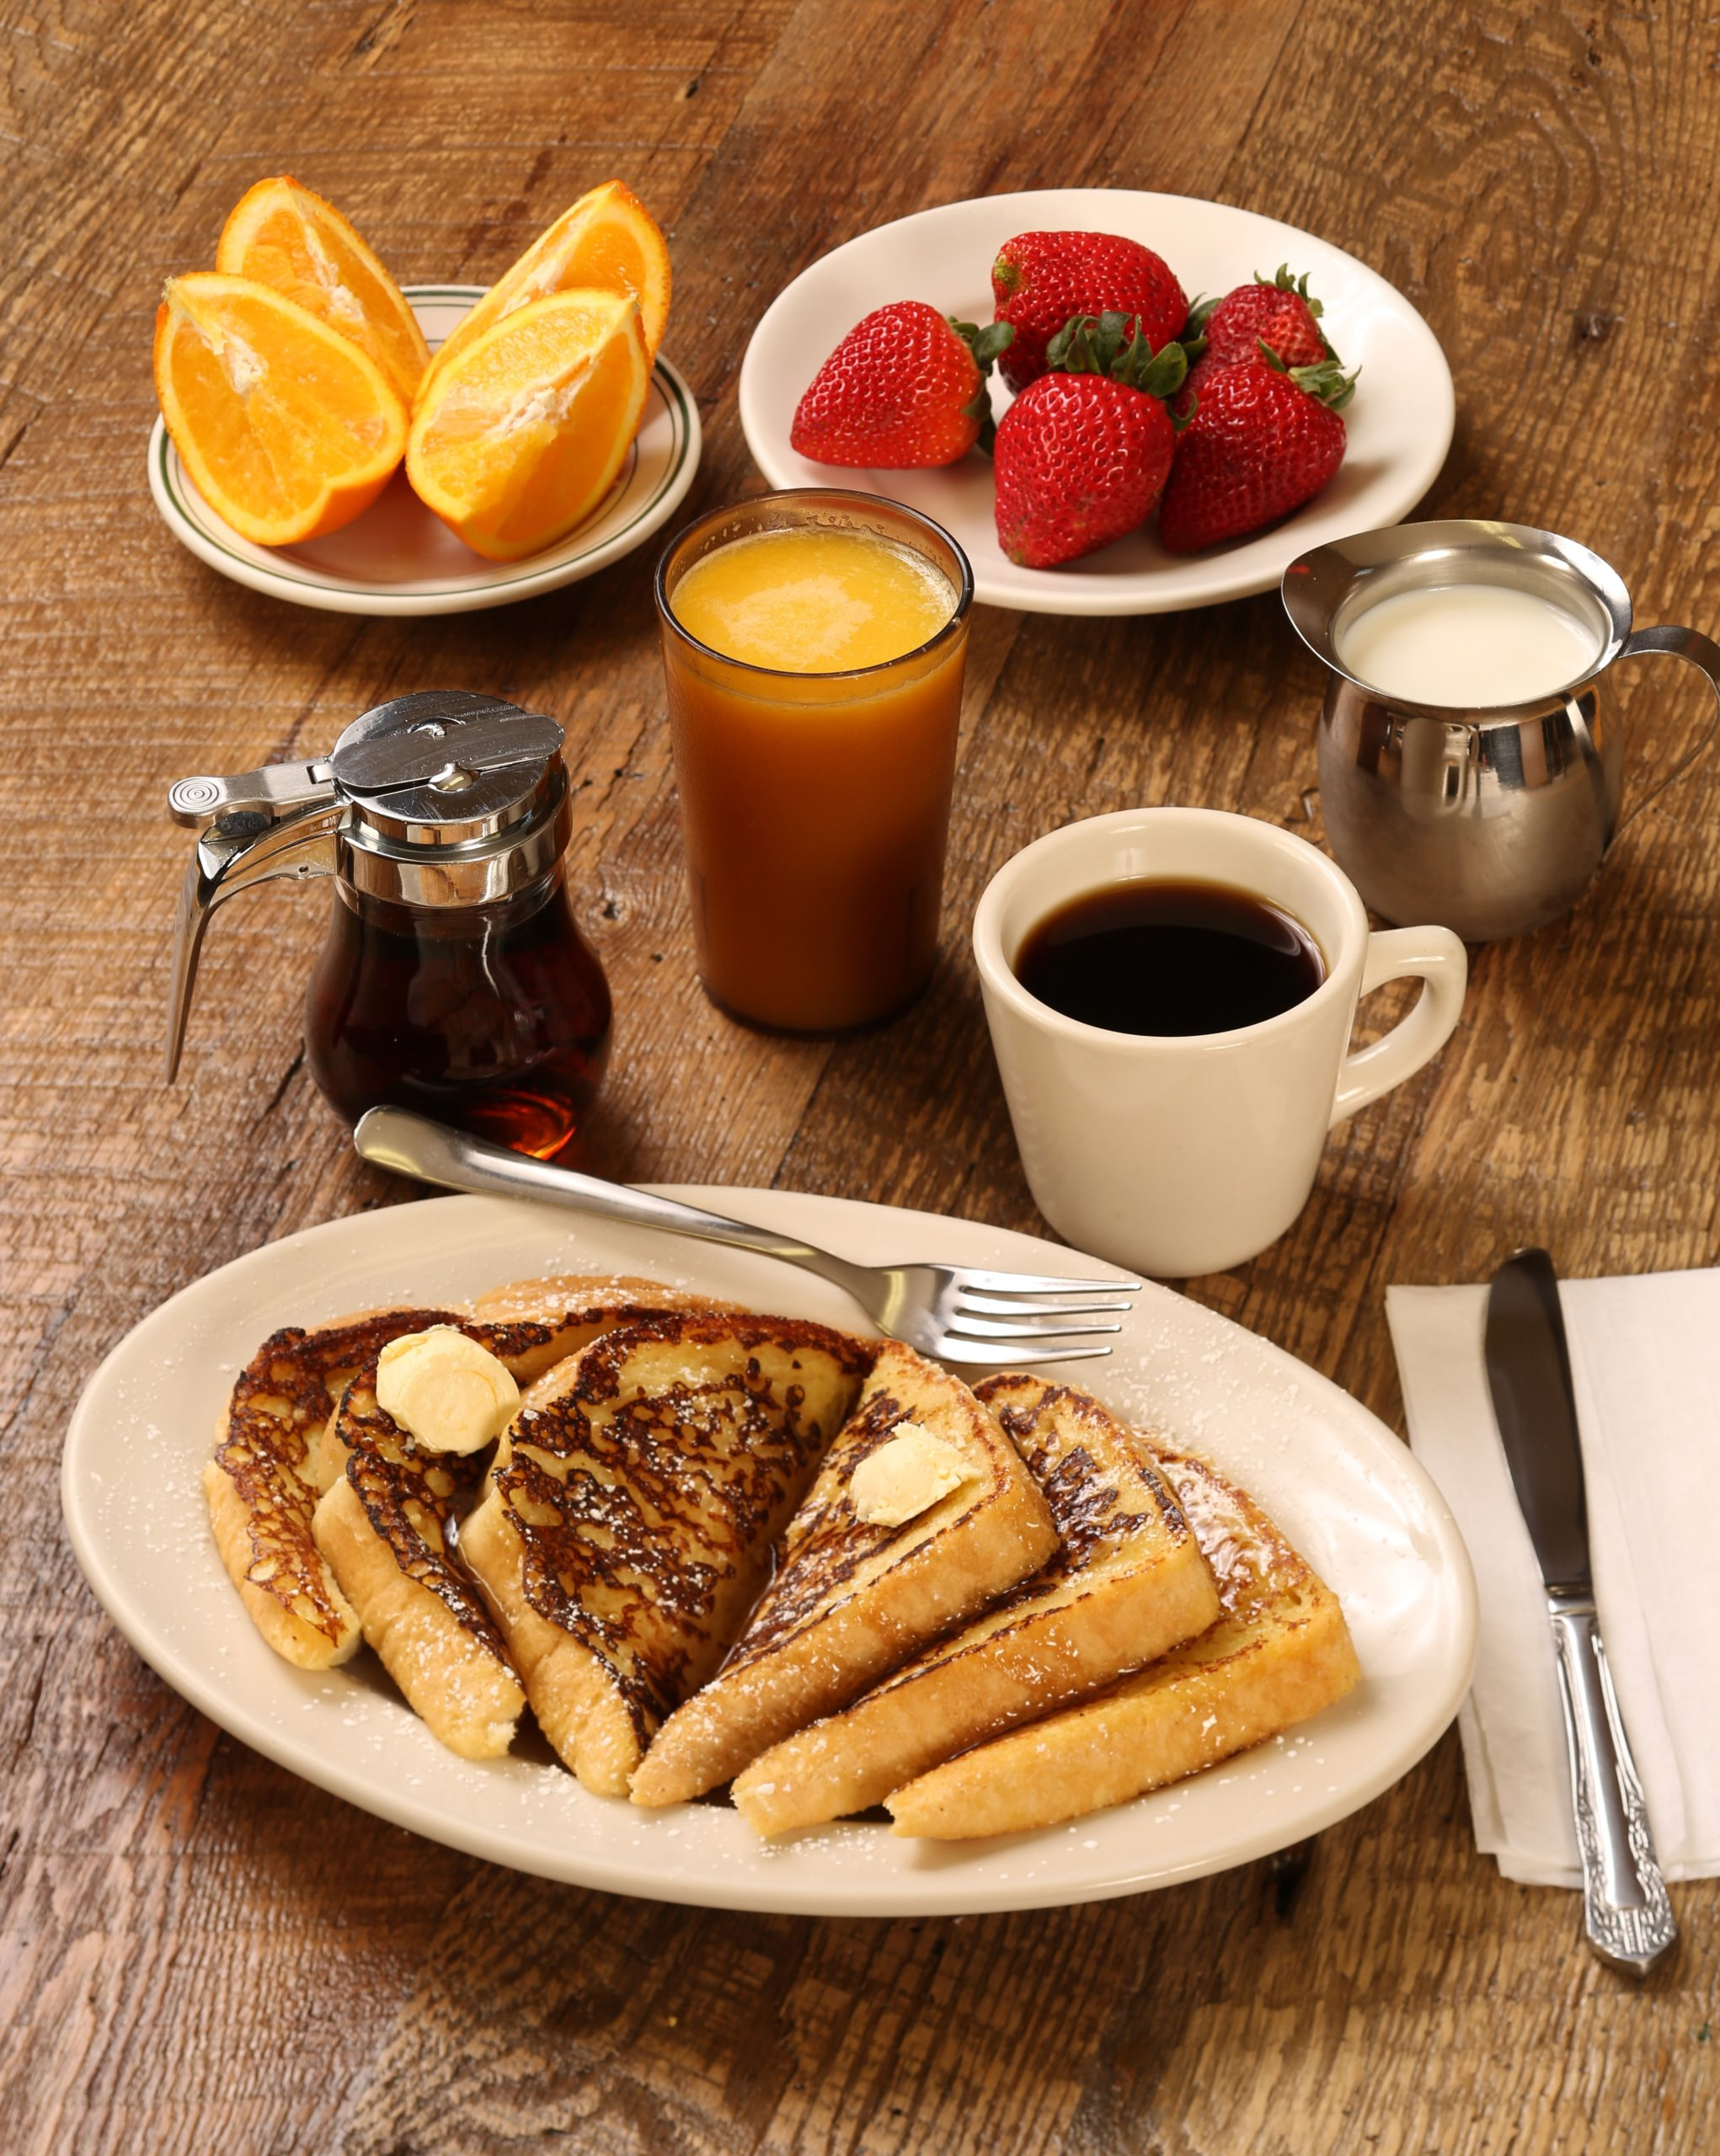 A diner breakfast of french toast, coffee, orange juice, orange slices, strawberrys, and maple syrup